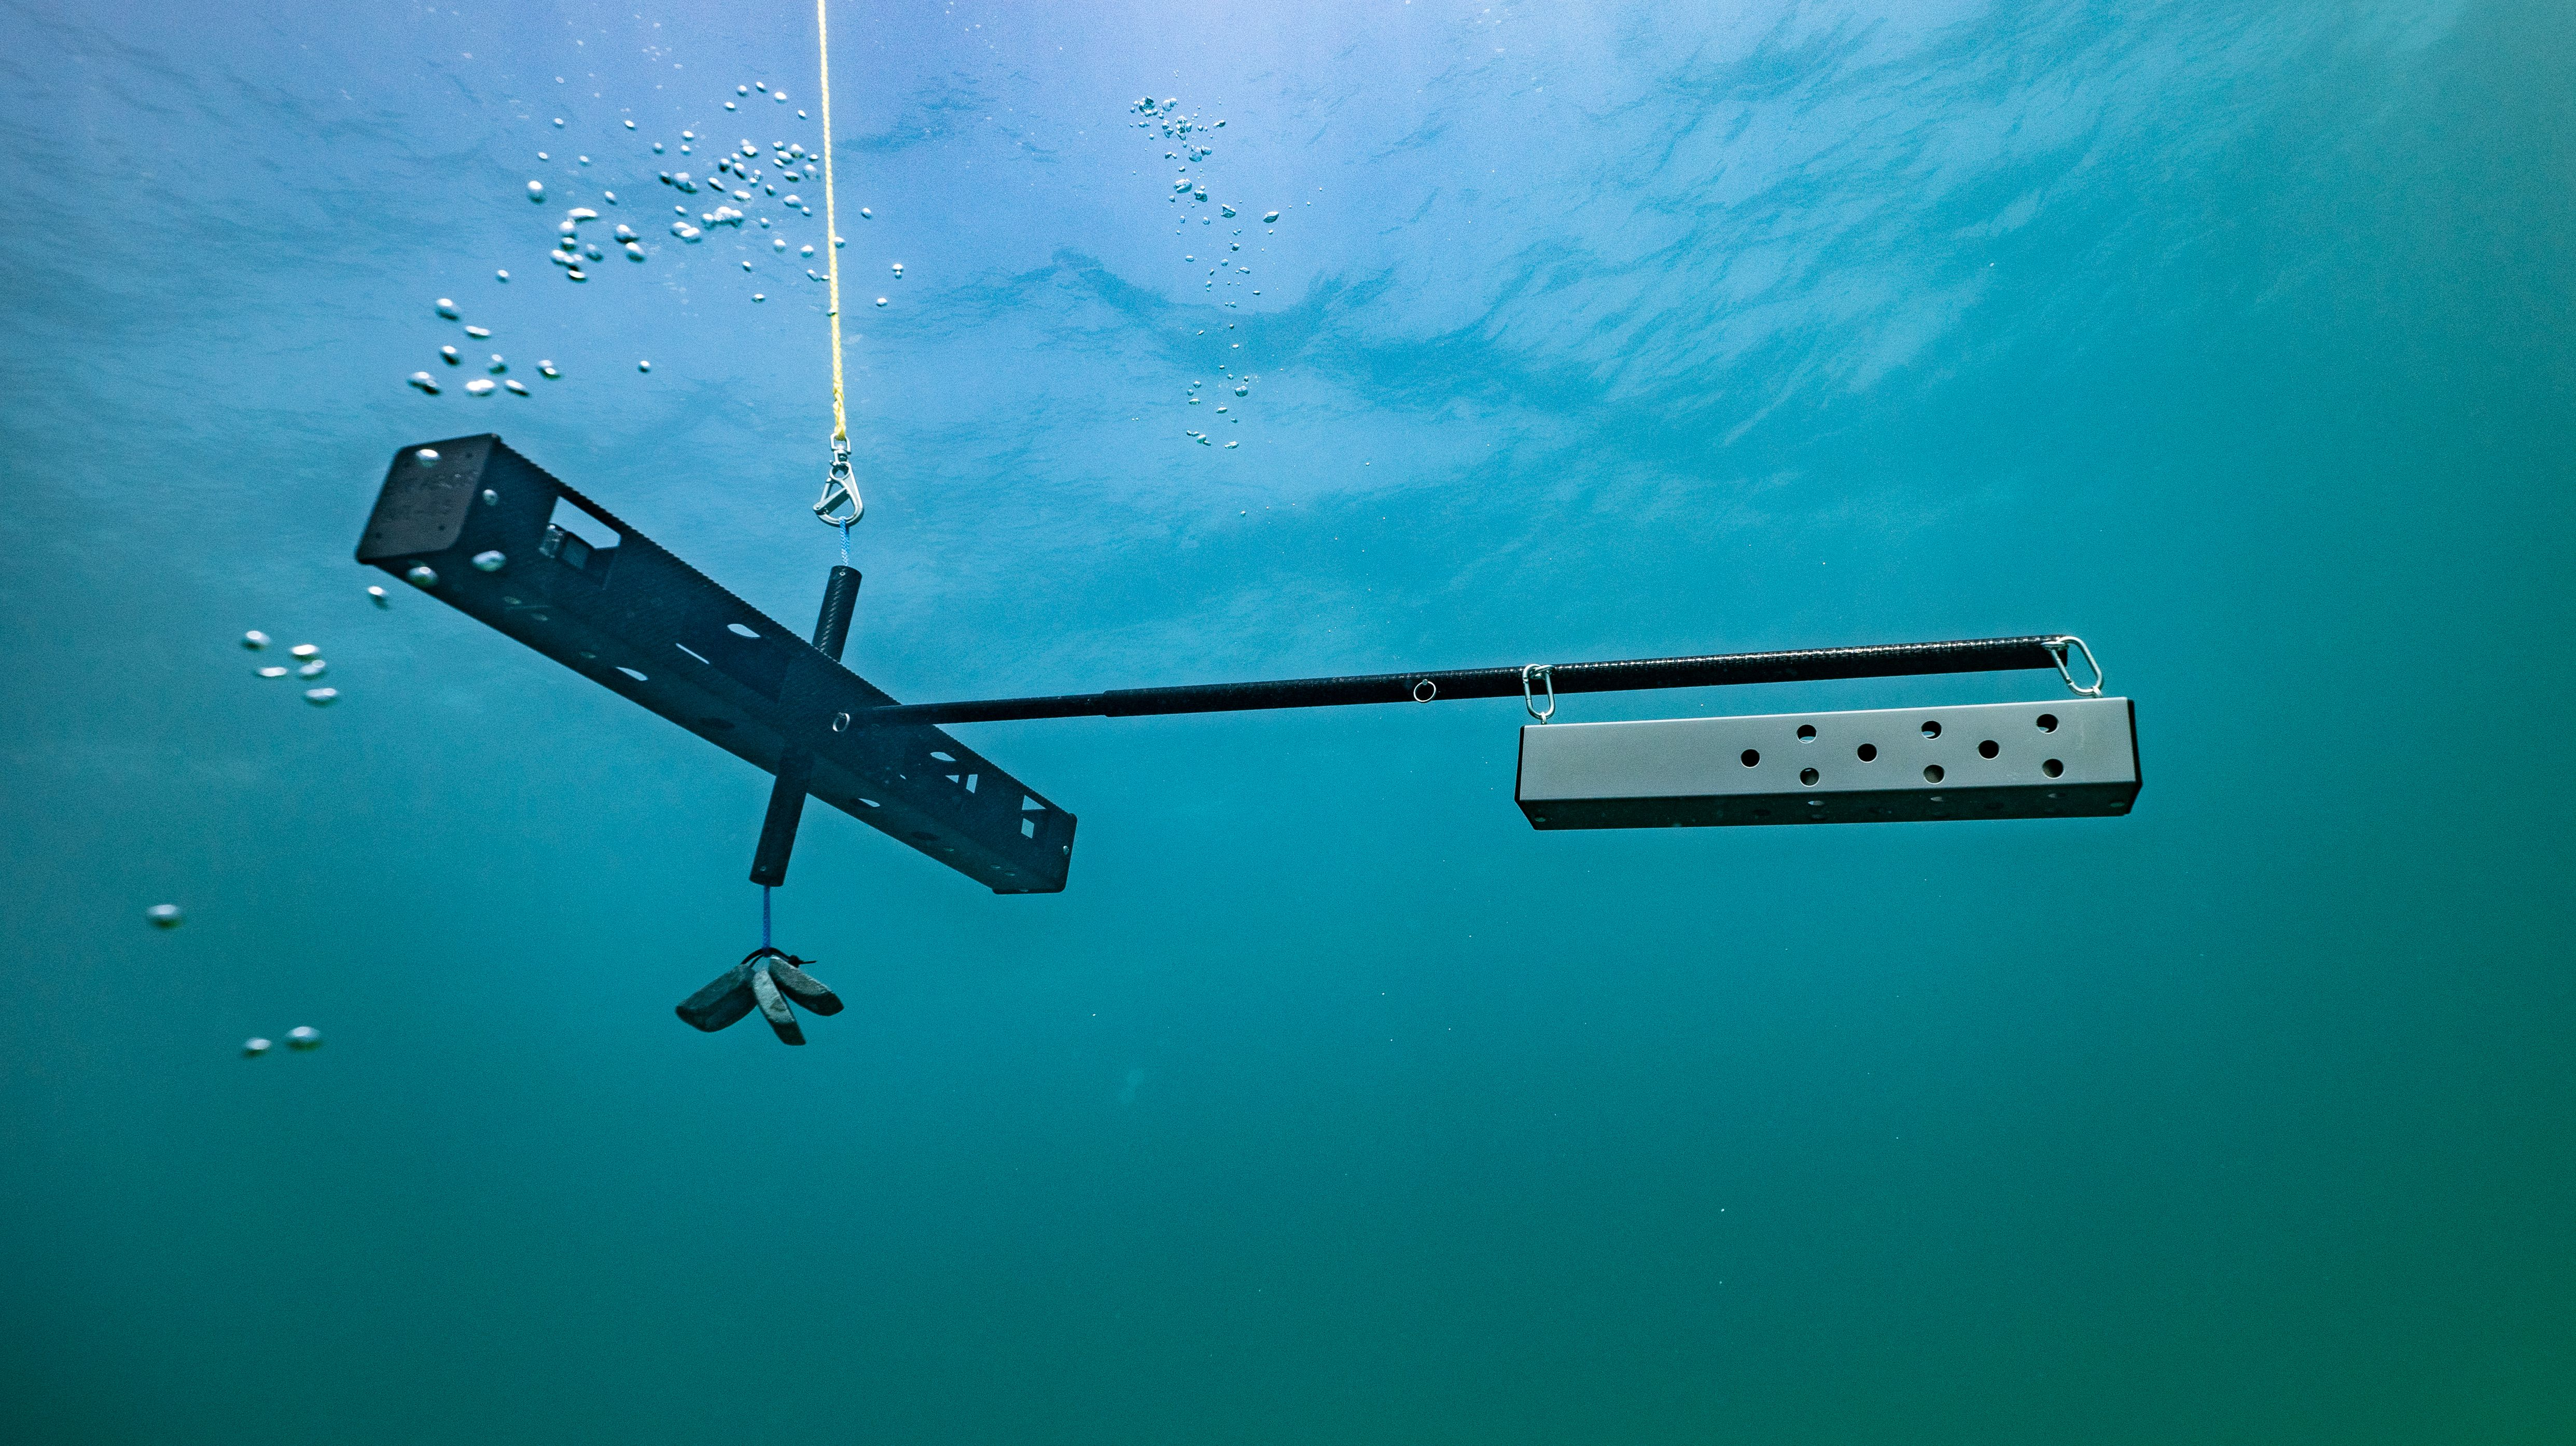 Each device has two action cameras and a baited trap to lure wildlife. They will be placed about 30 feet beneath the ocean's